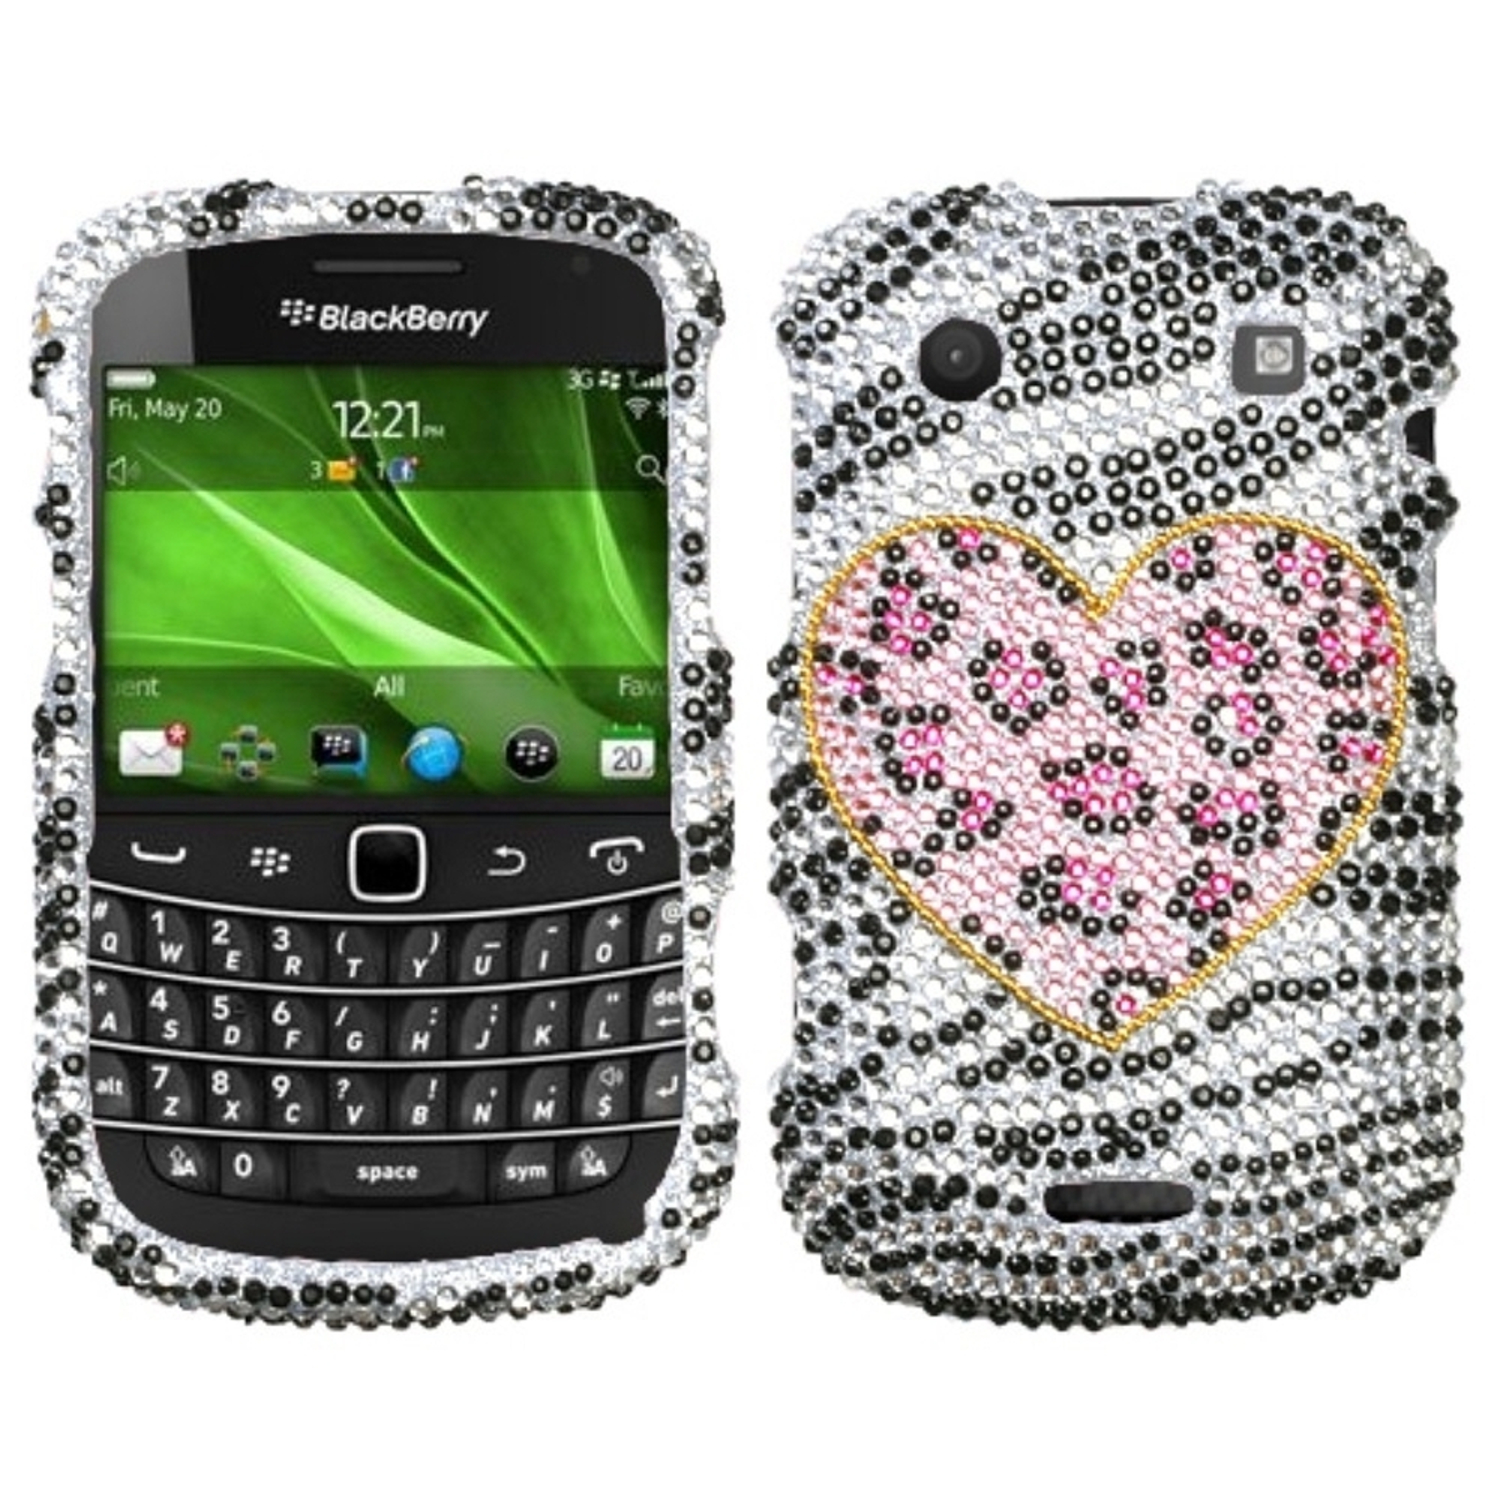 Insten Playful Leopard Diamond Case Cover For BLACKBERRY 9930 Bold 9900 Bold